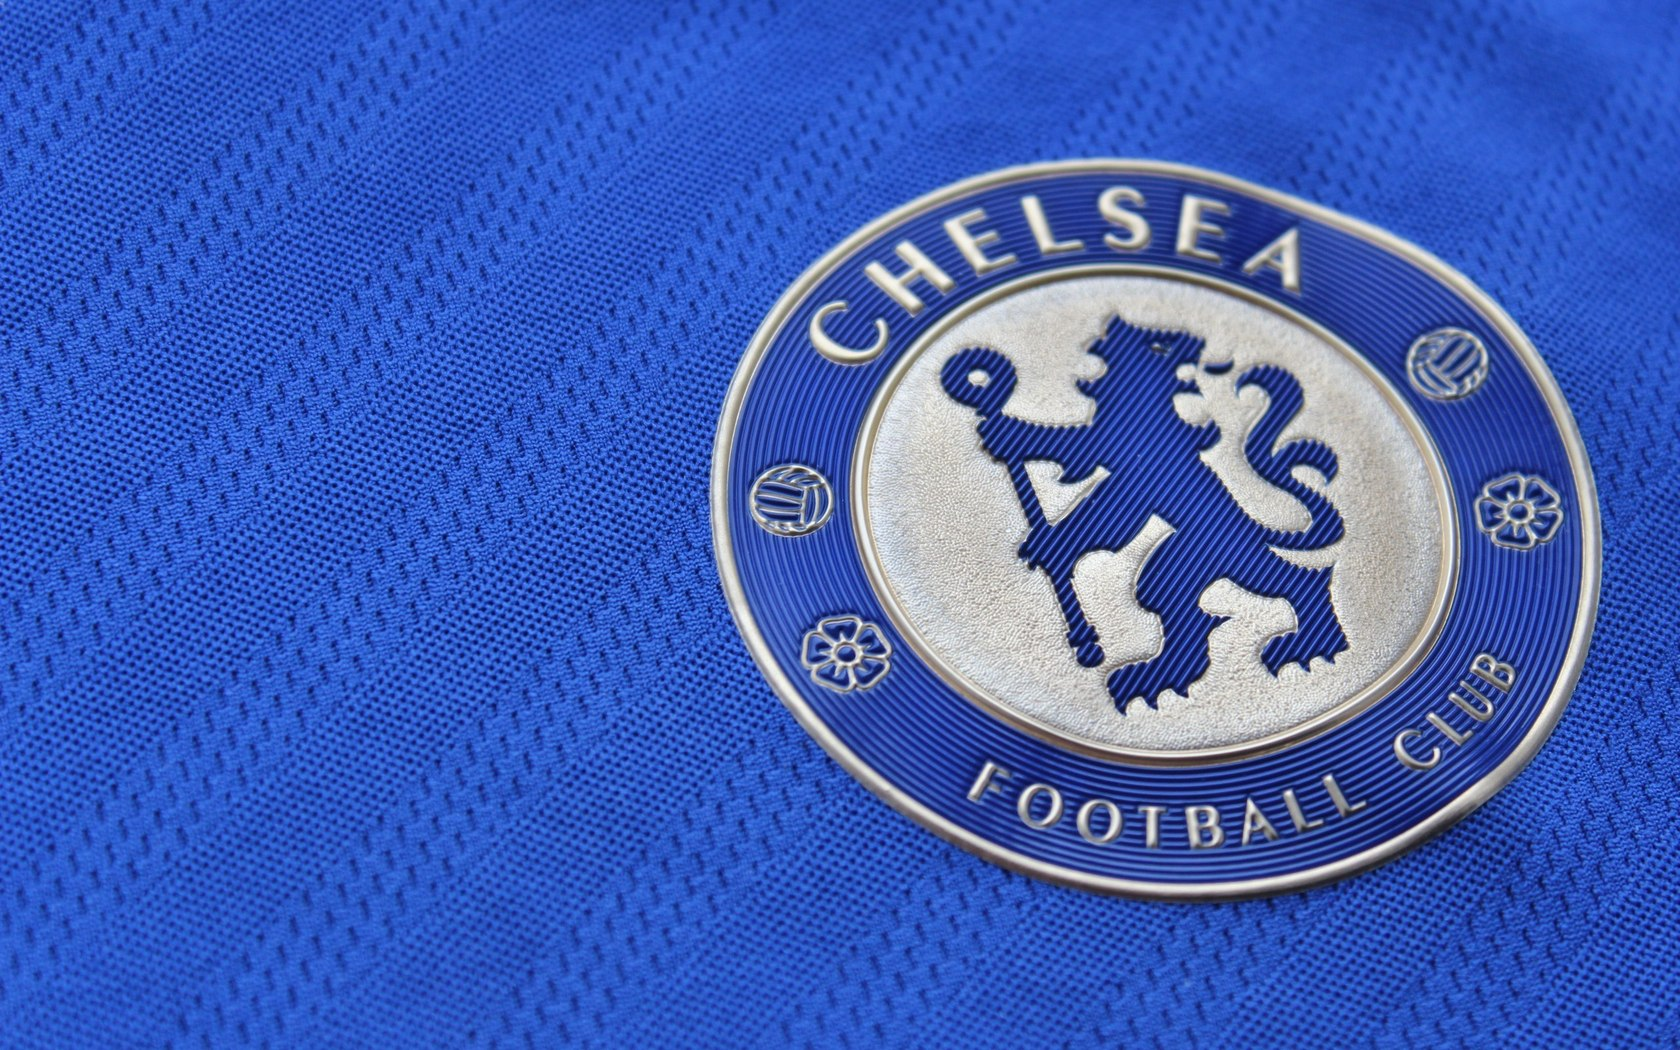 Chelsea Football Club 1680x1050 2060 HD Wallpaper Res 1680x1050 1680x1050